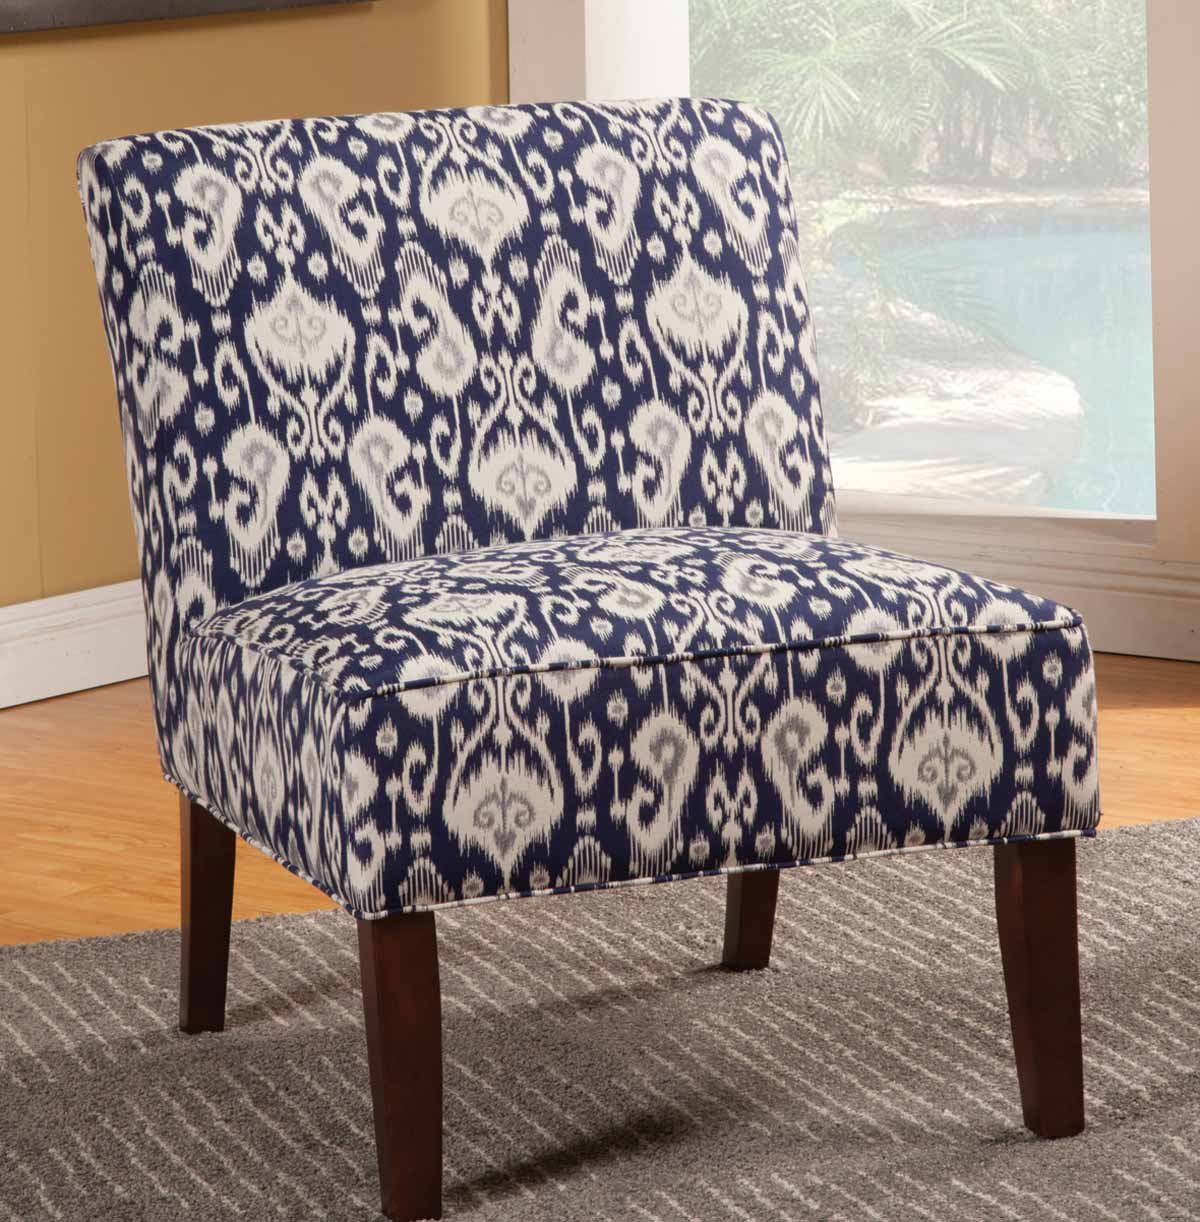 Coaster 902028 Accent Chair - Navy/White